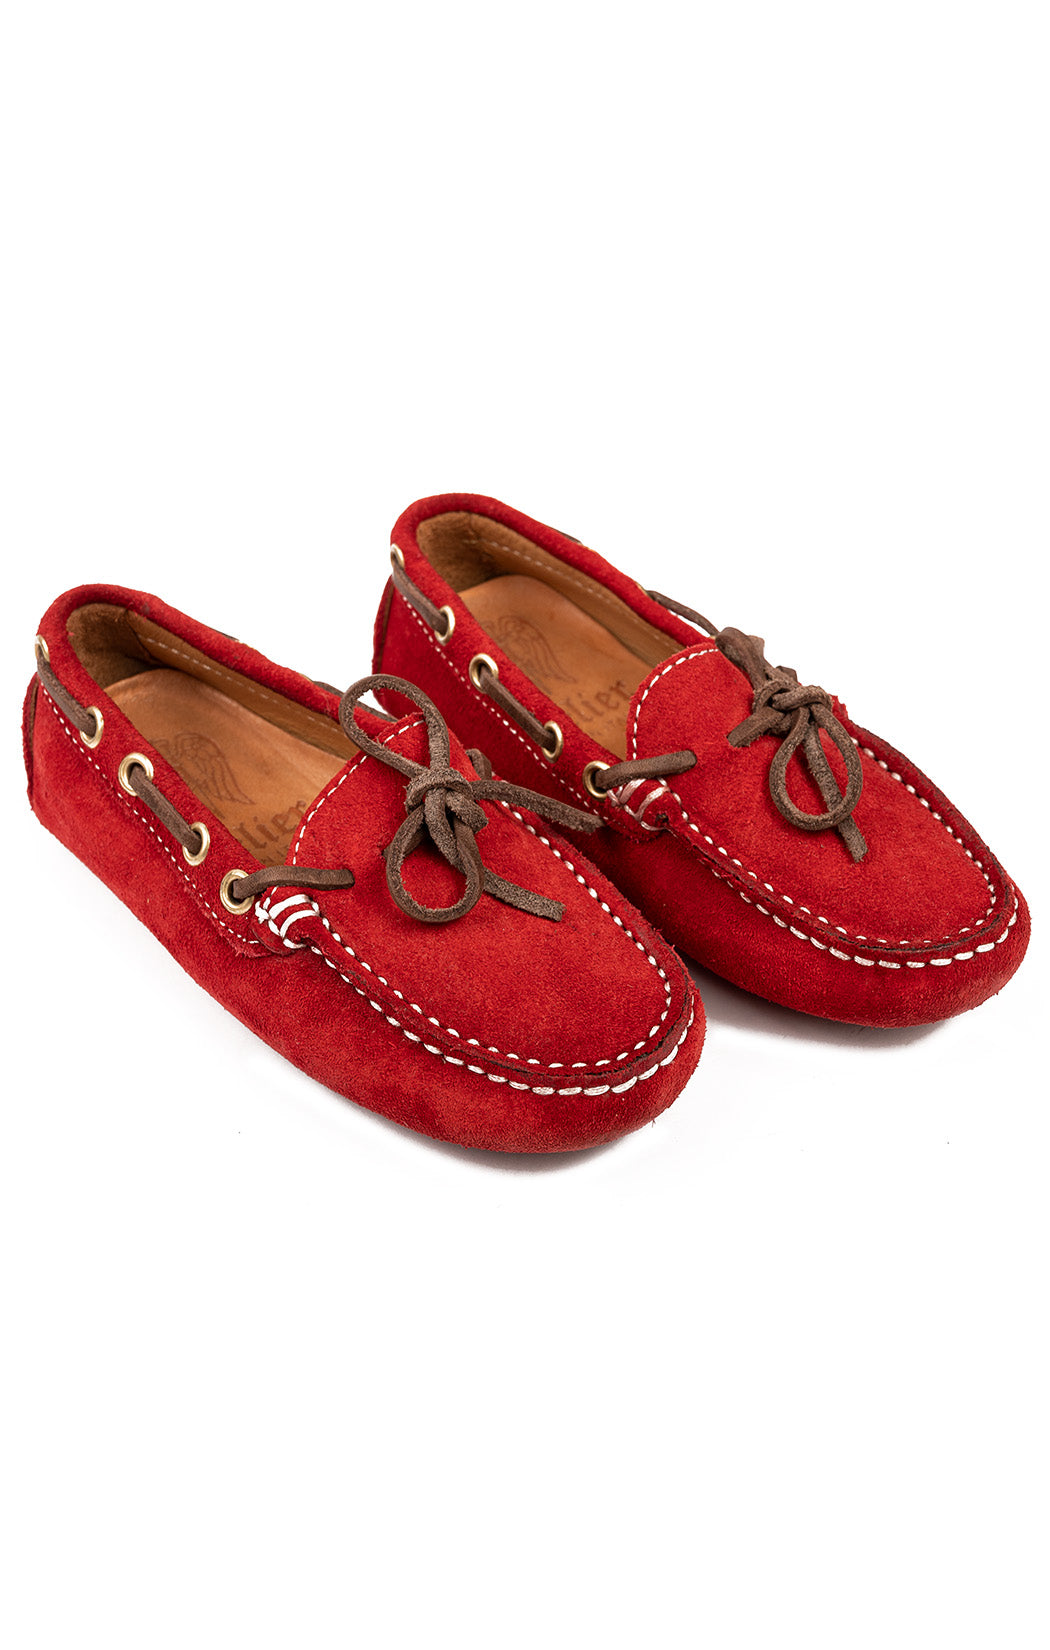 ATELIER Moccasins  Size: 26 (comparable to US10)